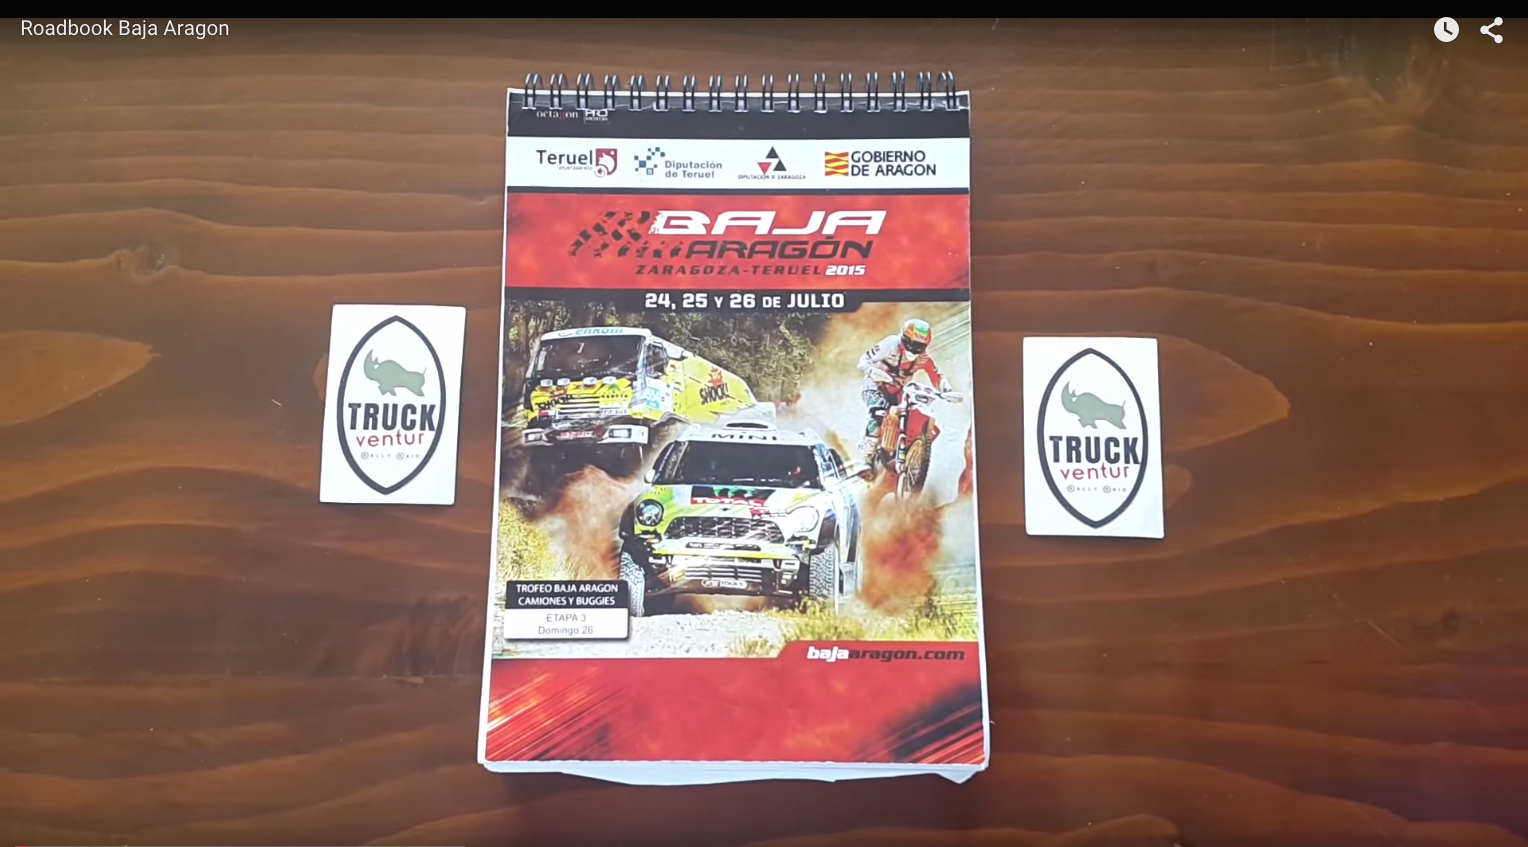 Roadbook Baja Aragon